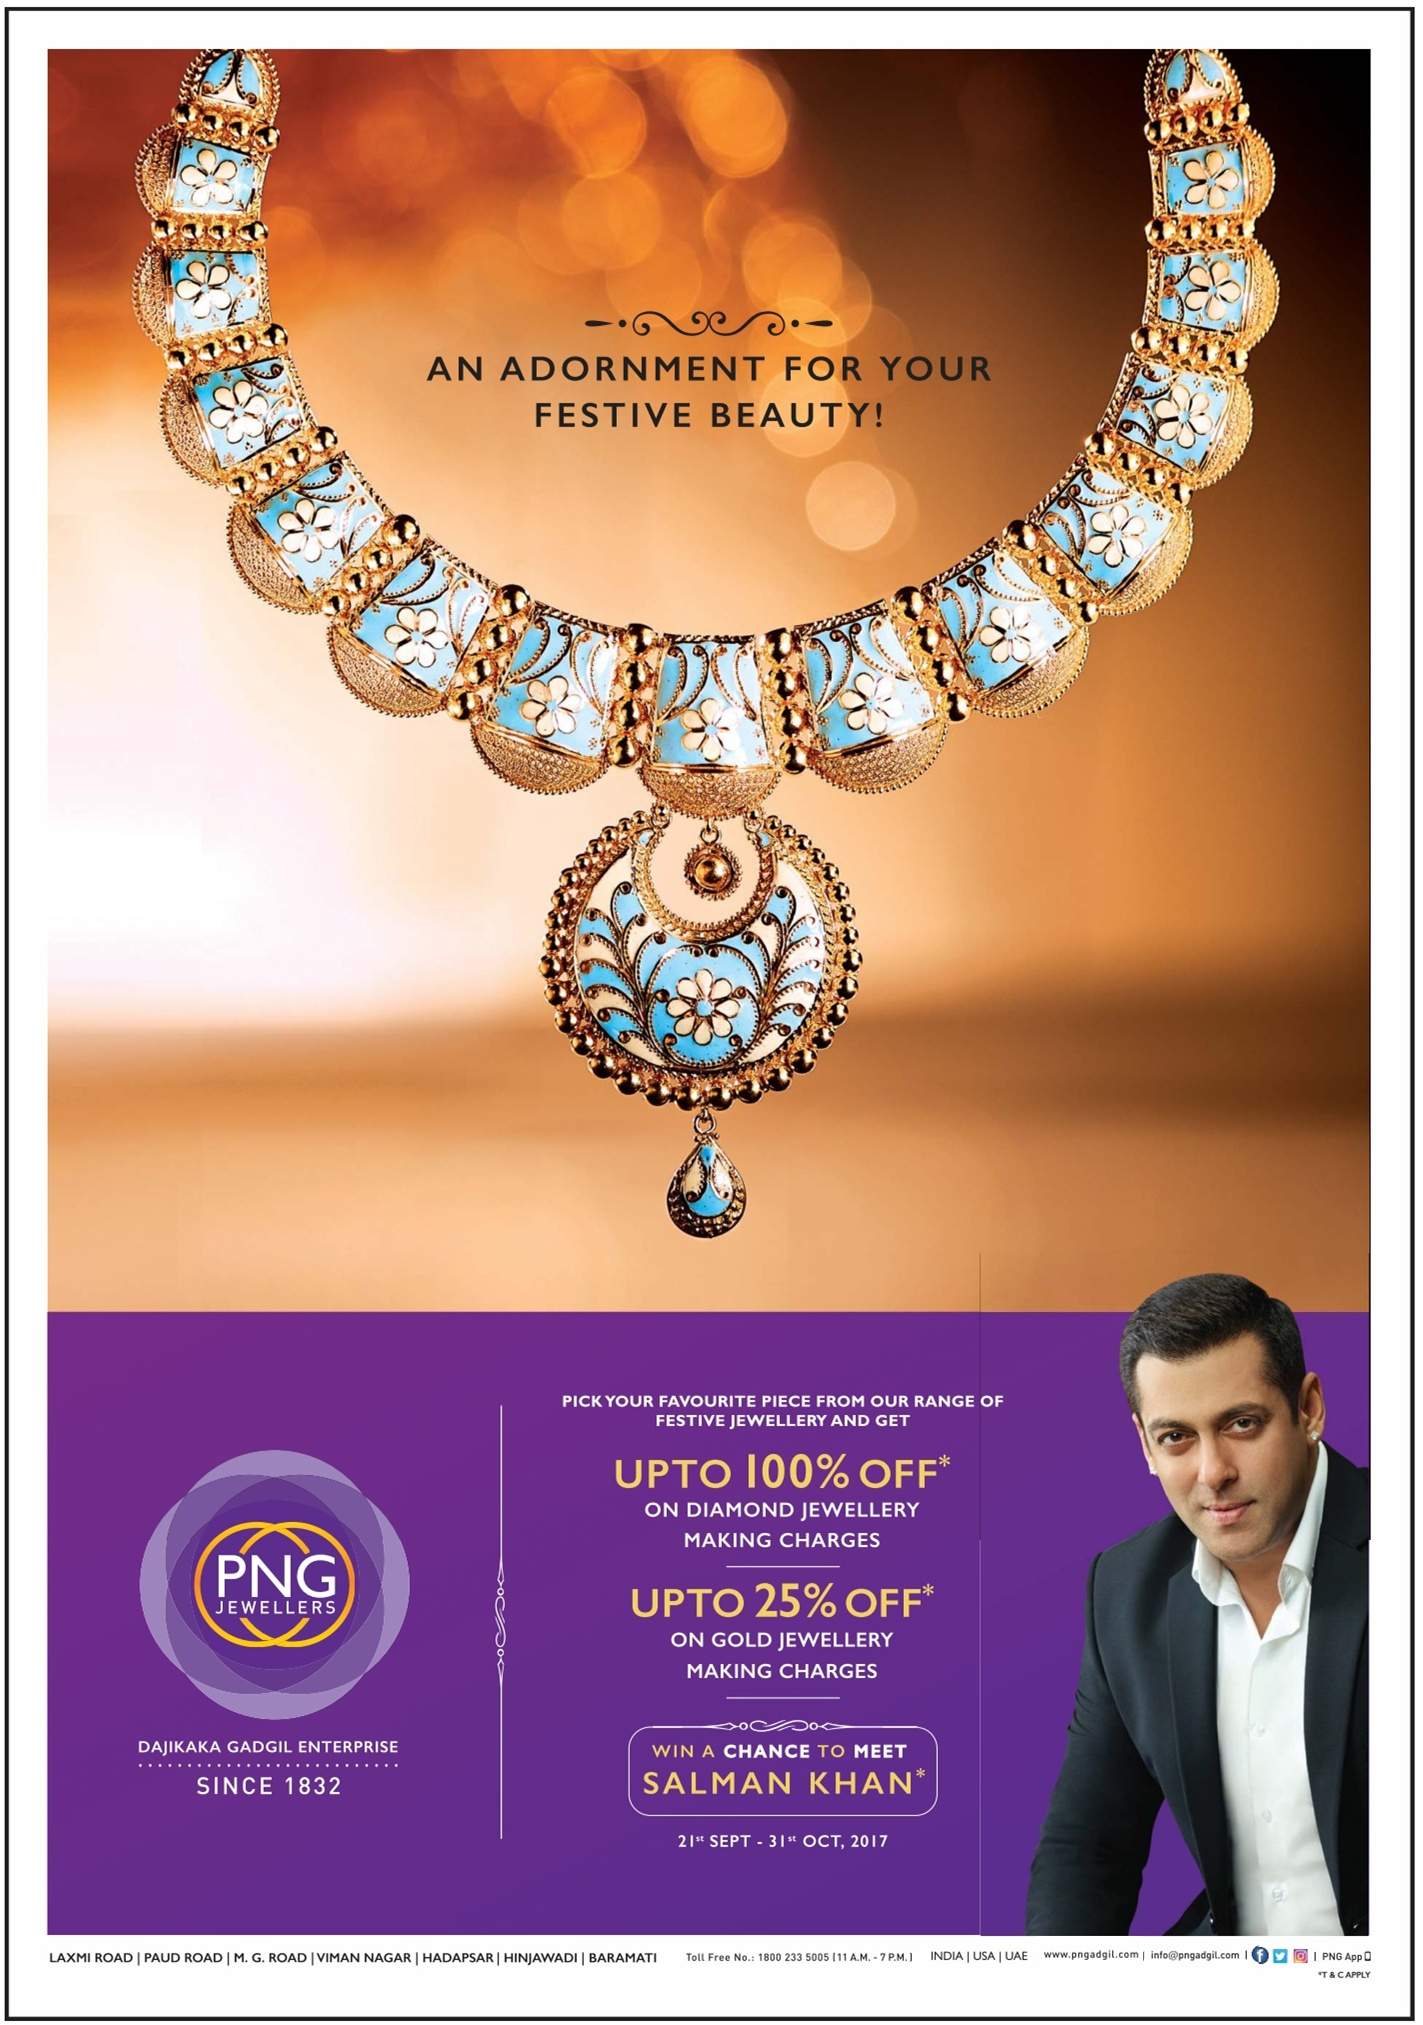 Png Jewellers An Adornment For Your Festive Beauty Ad.